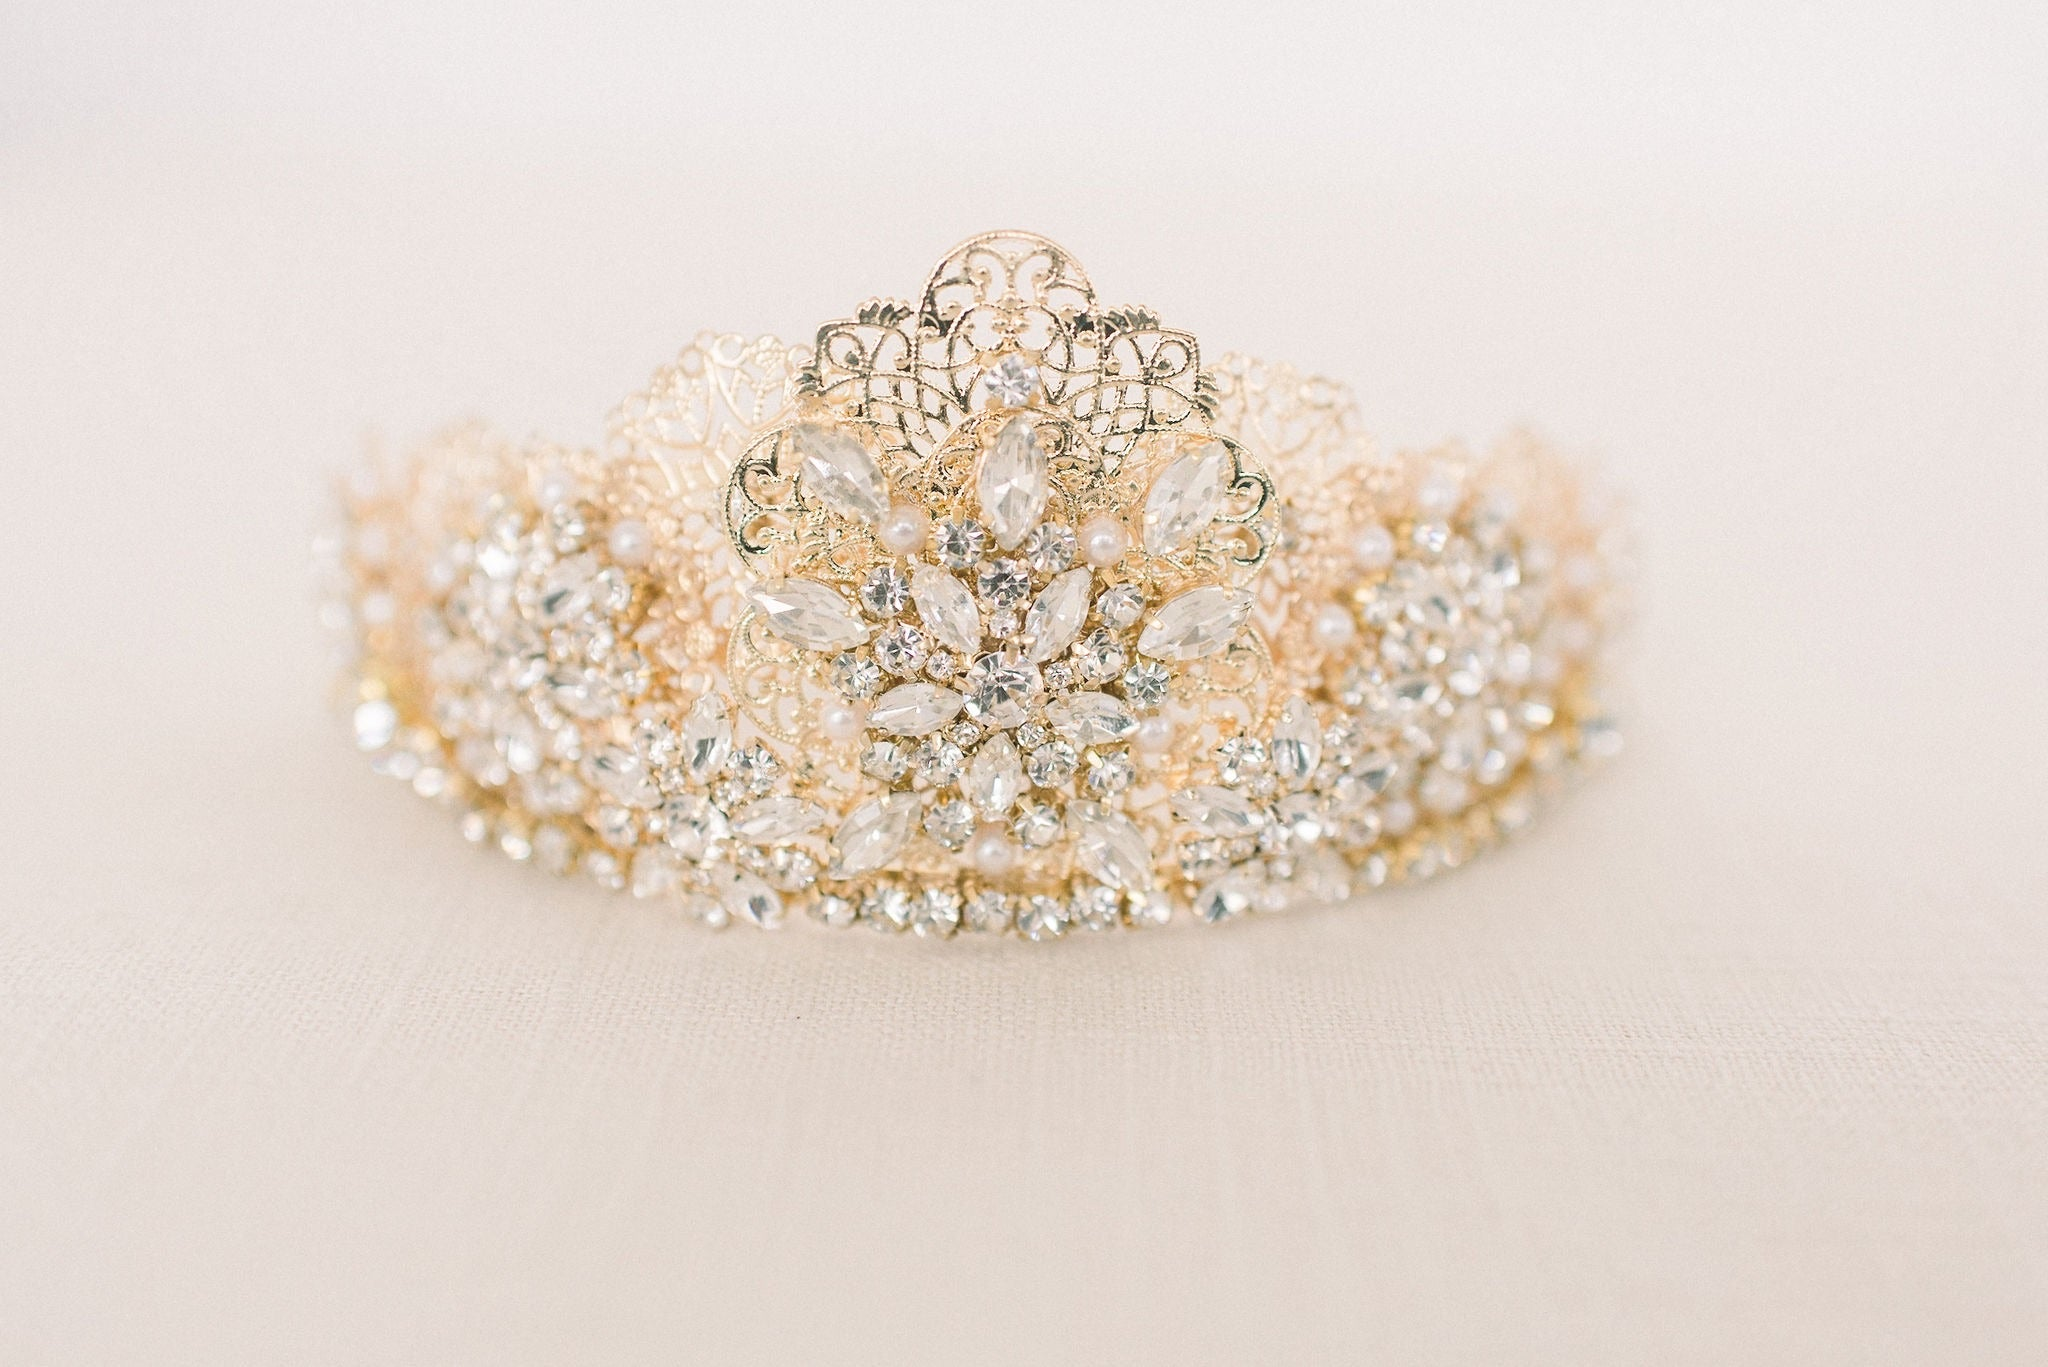 Gold rhinestone bridal crown - style 4013 - Tessa Kim